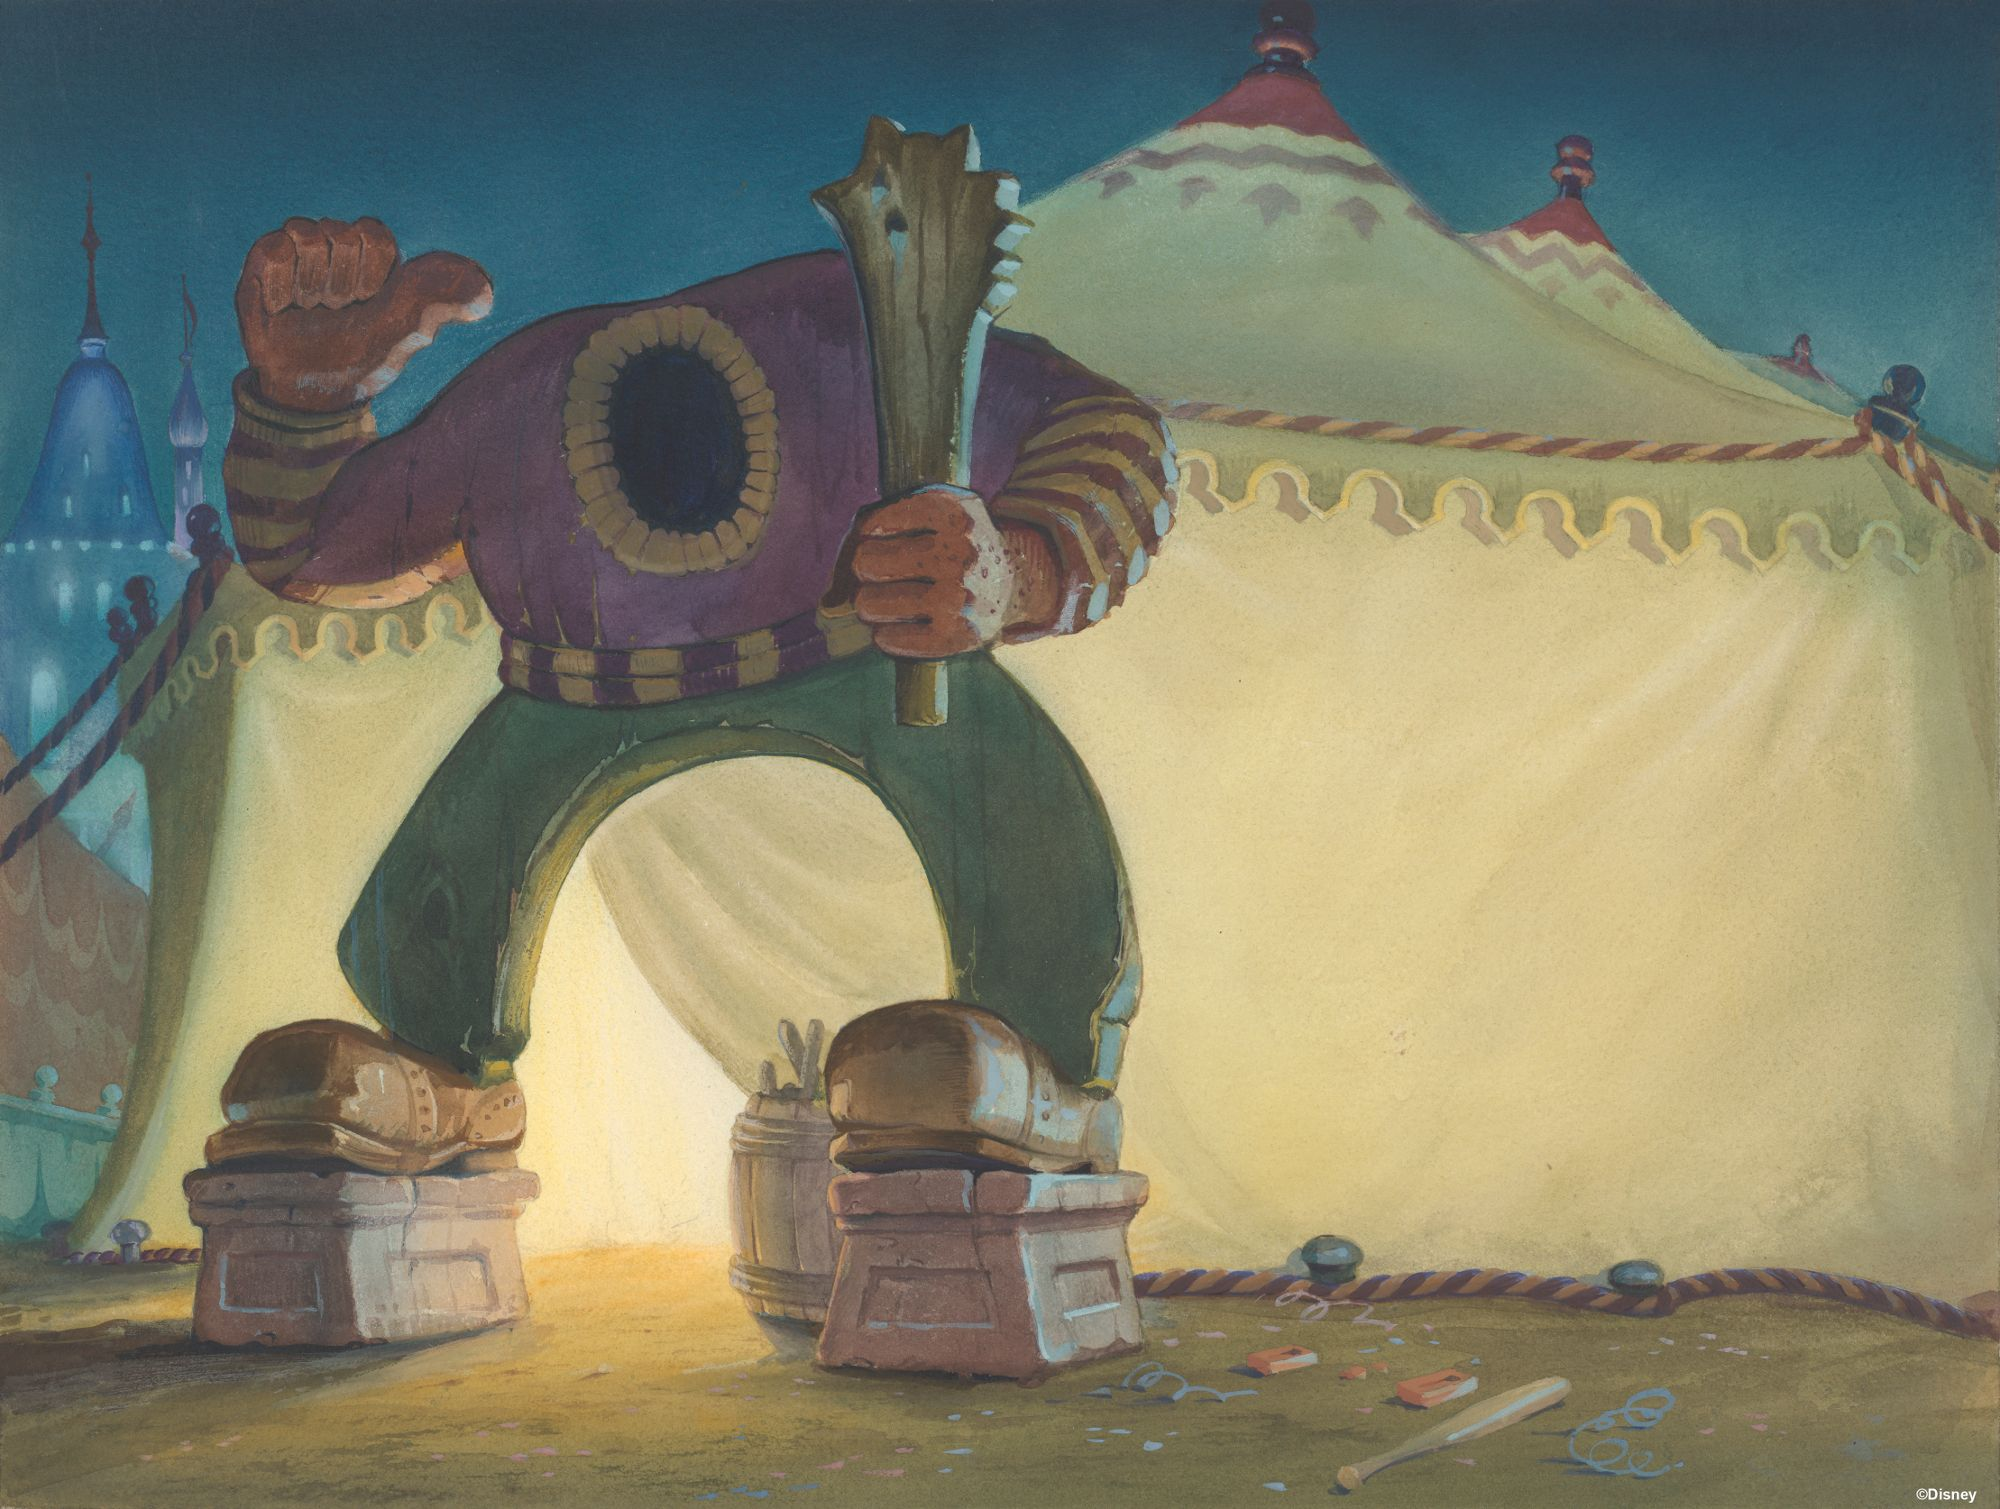 A Trip Through Pinocchio's History at the Disney Animated